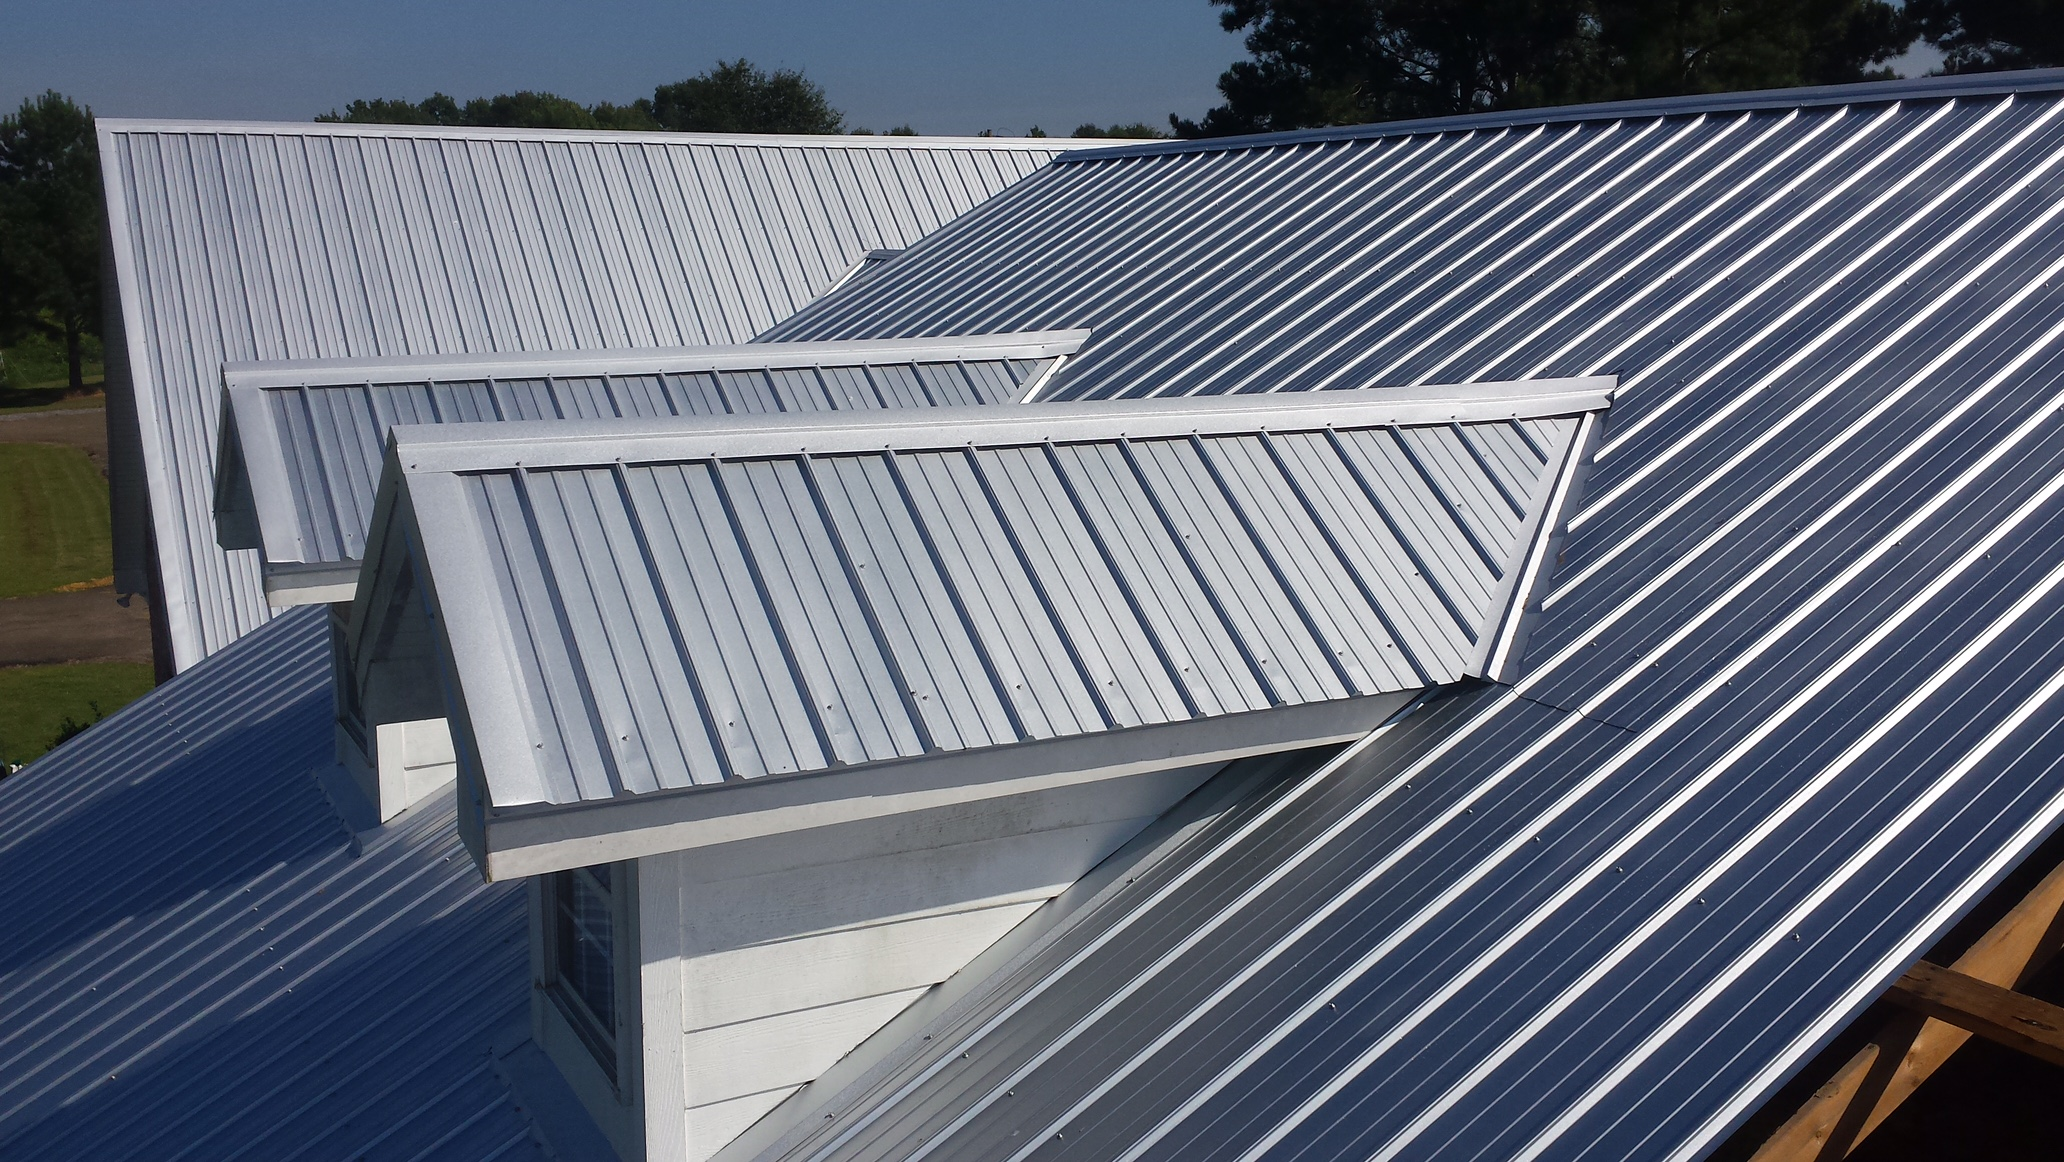 The Best Cooling Roofing Material For Warmer Climates